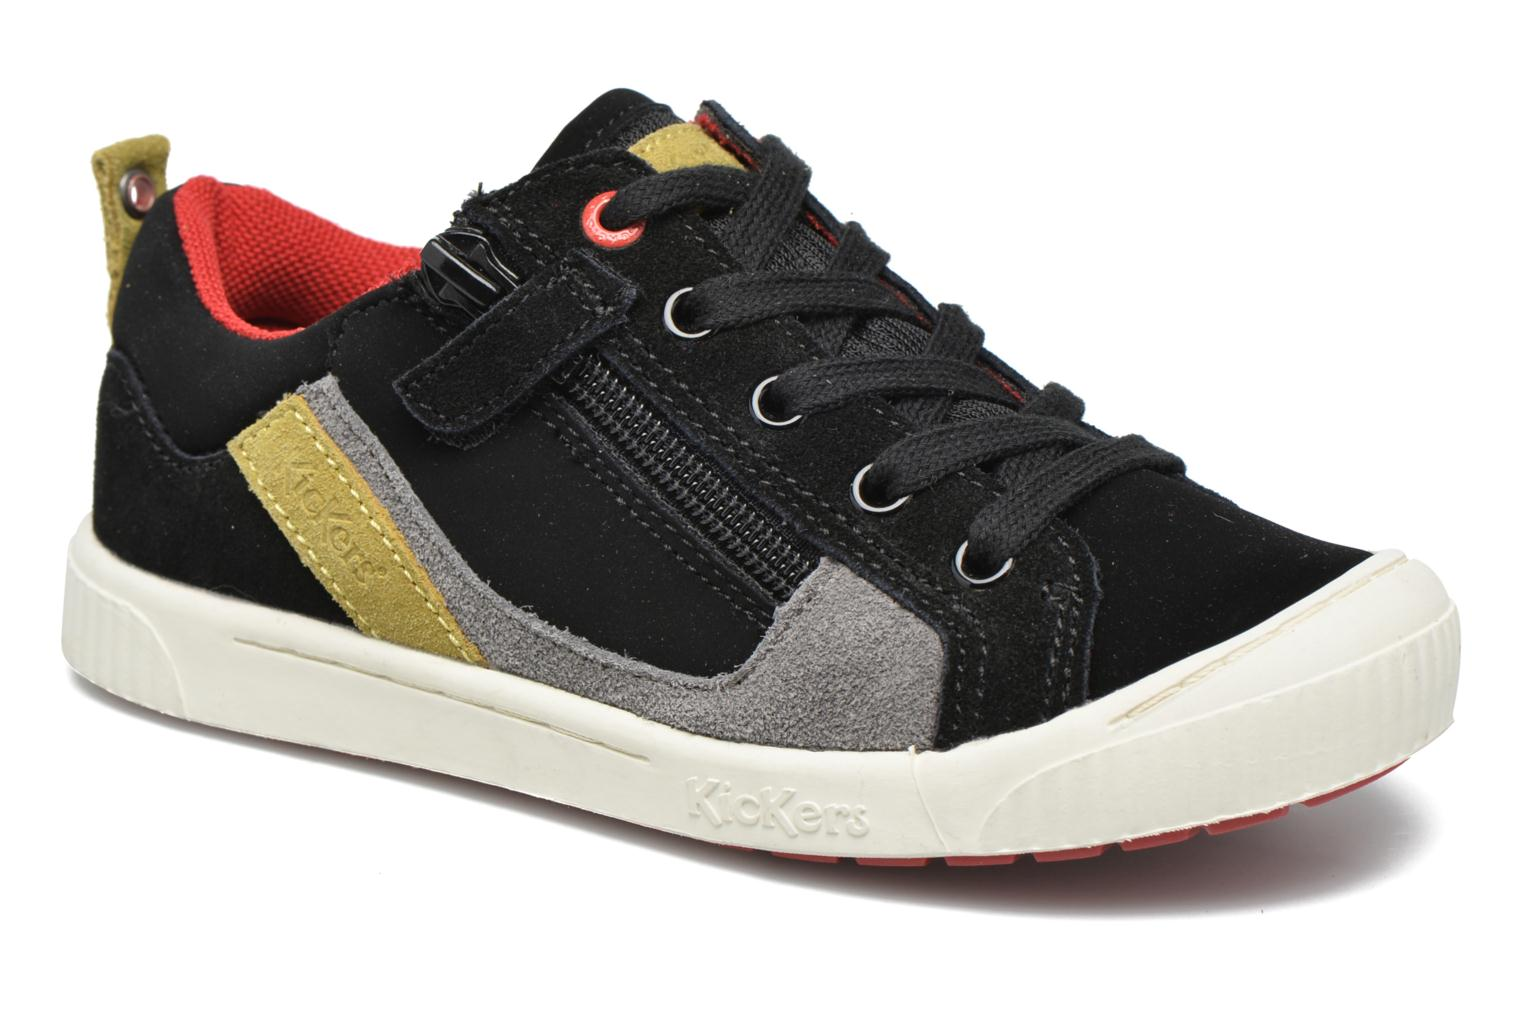 Sneakers Zigzaguer by Kickers